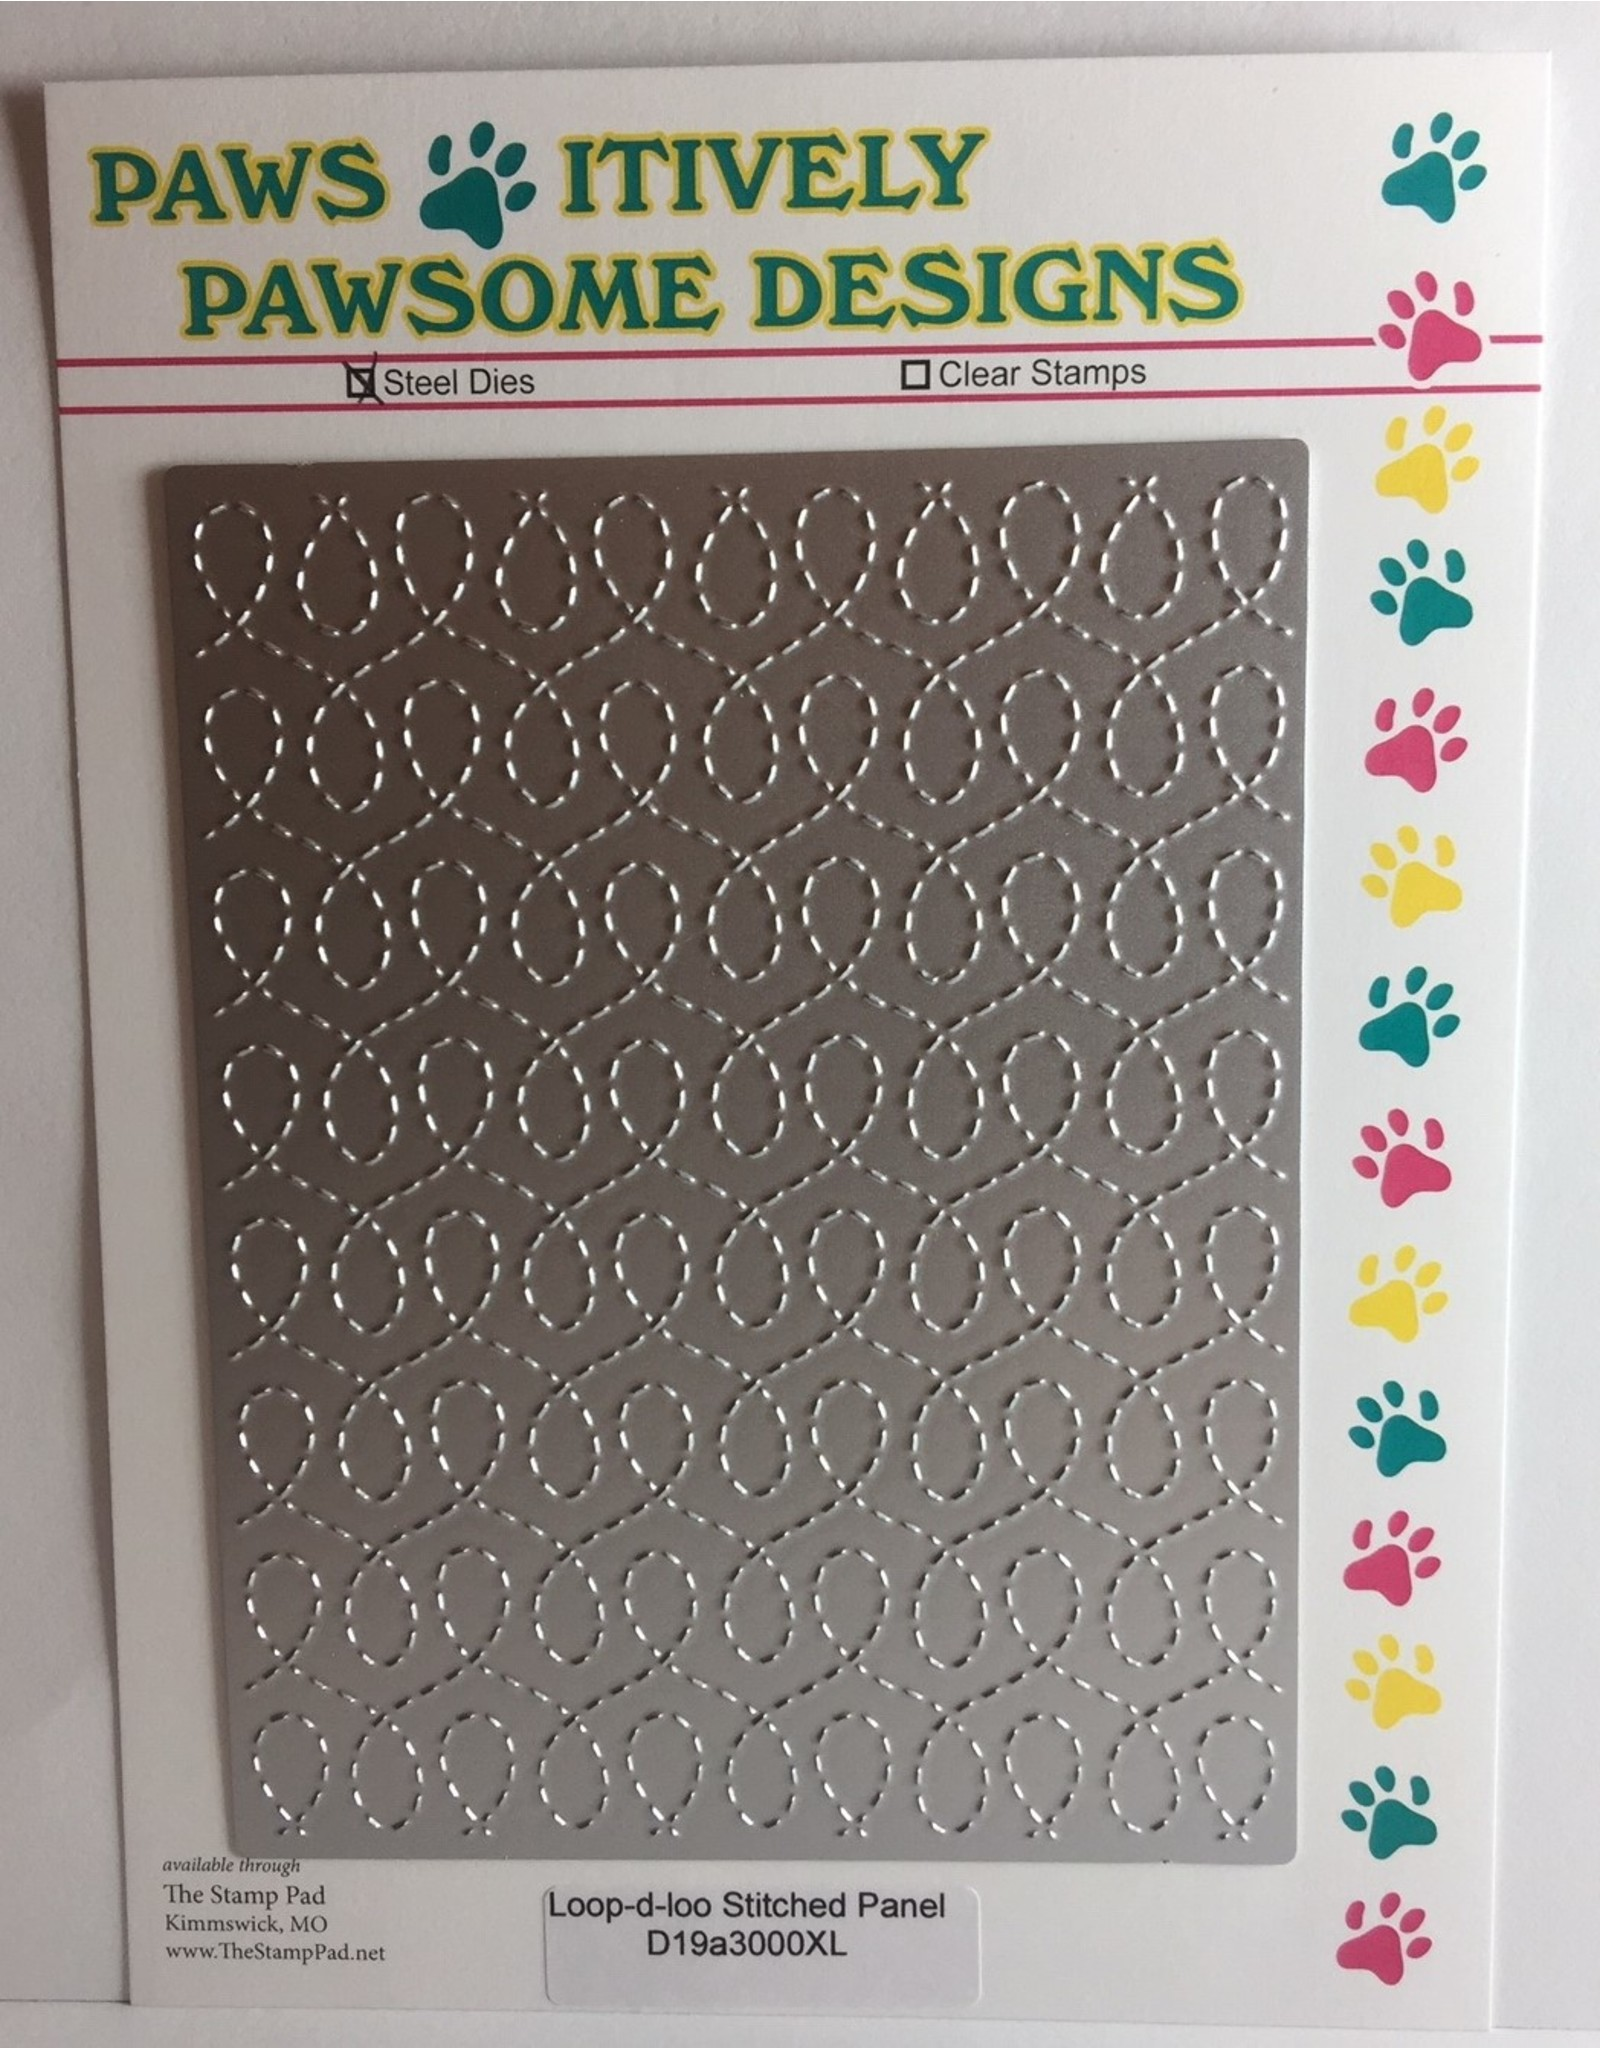 Paws-Itively Pawsome Designs Loop-d-loo Stitched Panel - Die